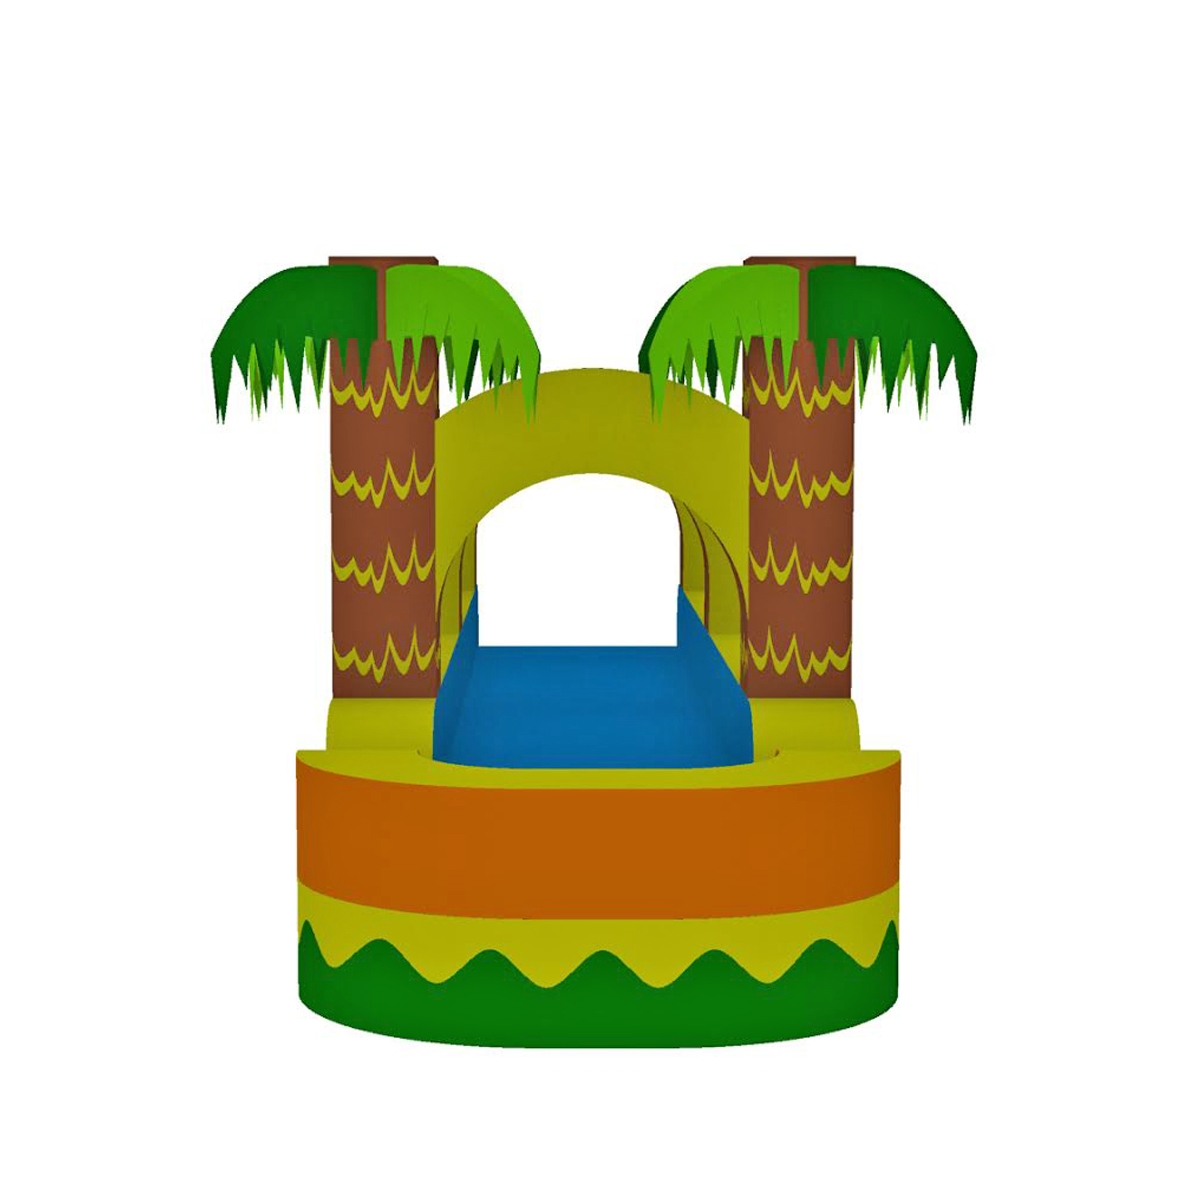 tropical palm trees water slide, bounce house, castle, castle.